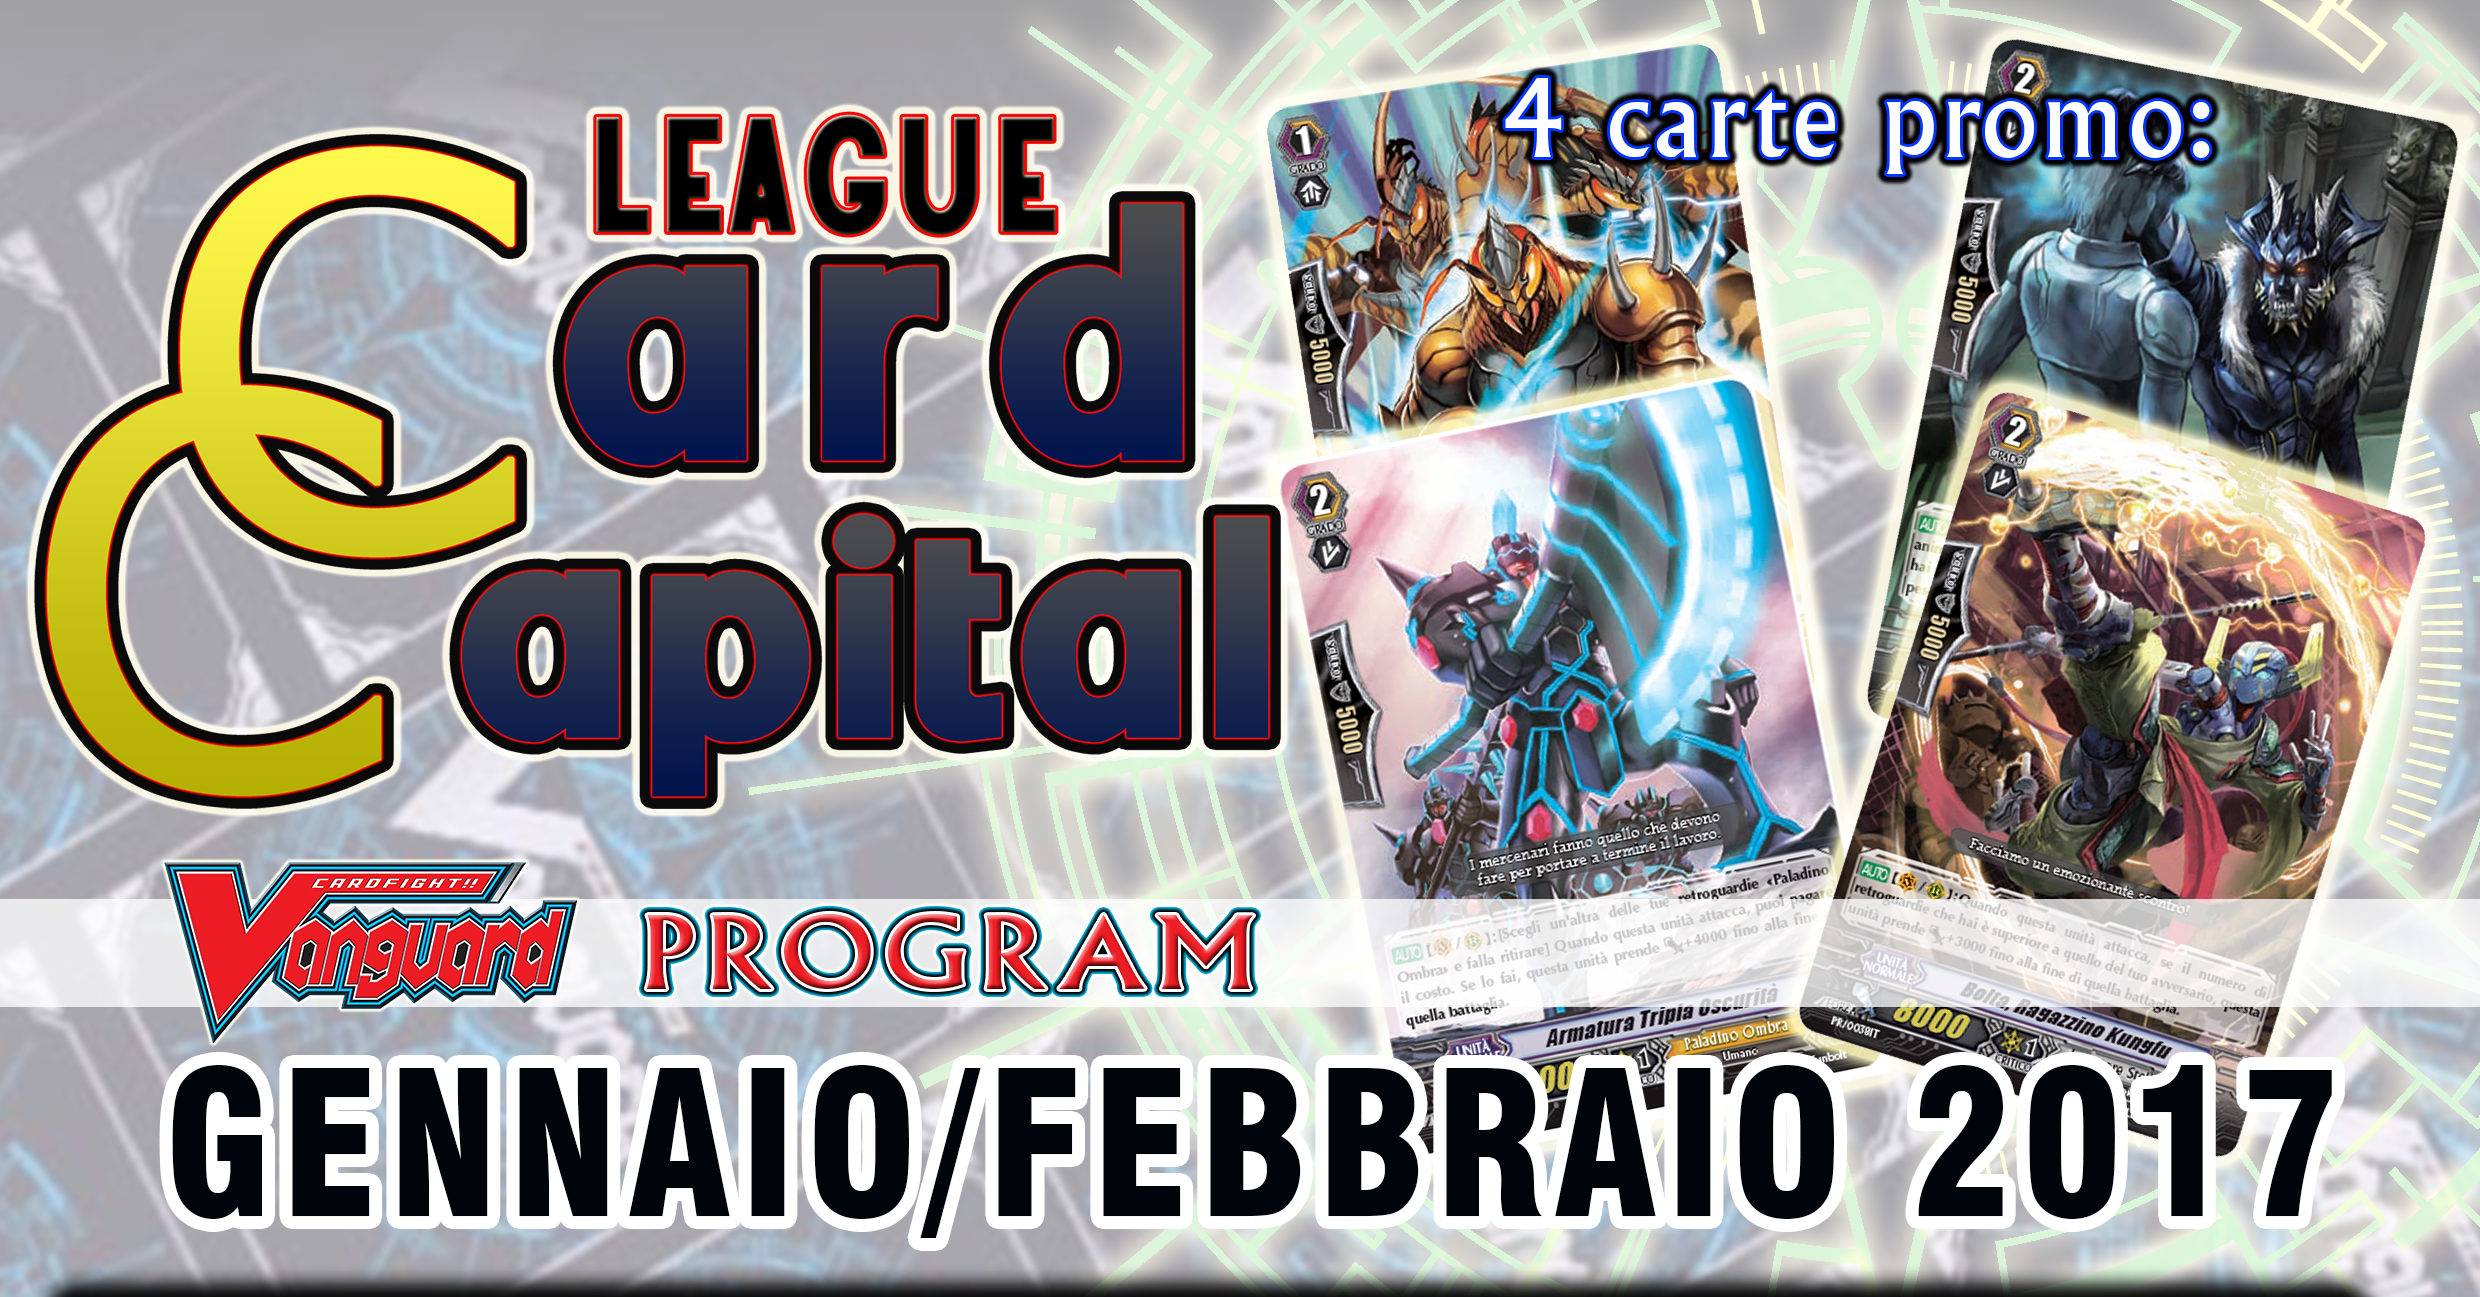 Card Capital League: FOCUS PROMO GEN e FEB 2017